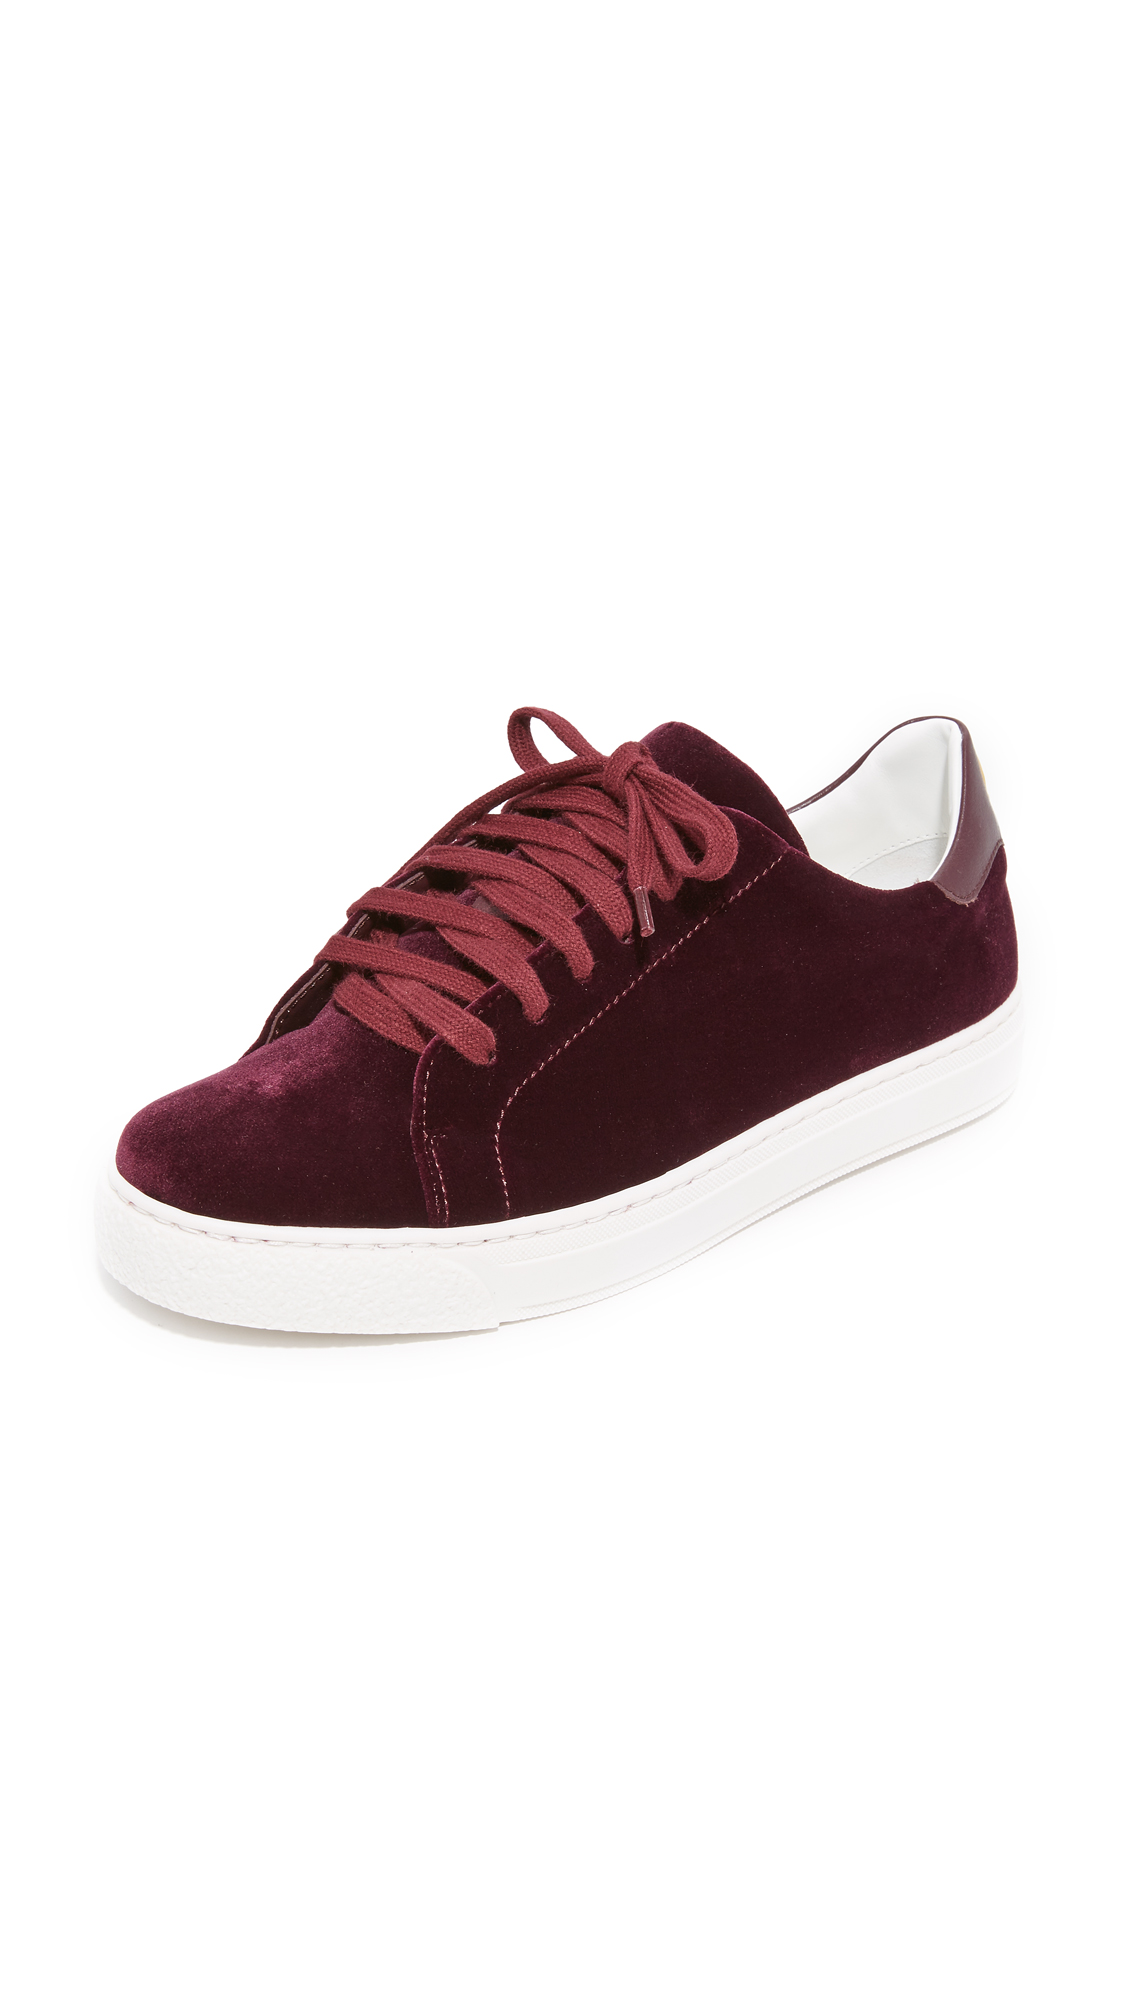 Anya Hindmarch Tennis Shoe Wink Sneakers - Burgundy at Shopbop